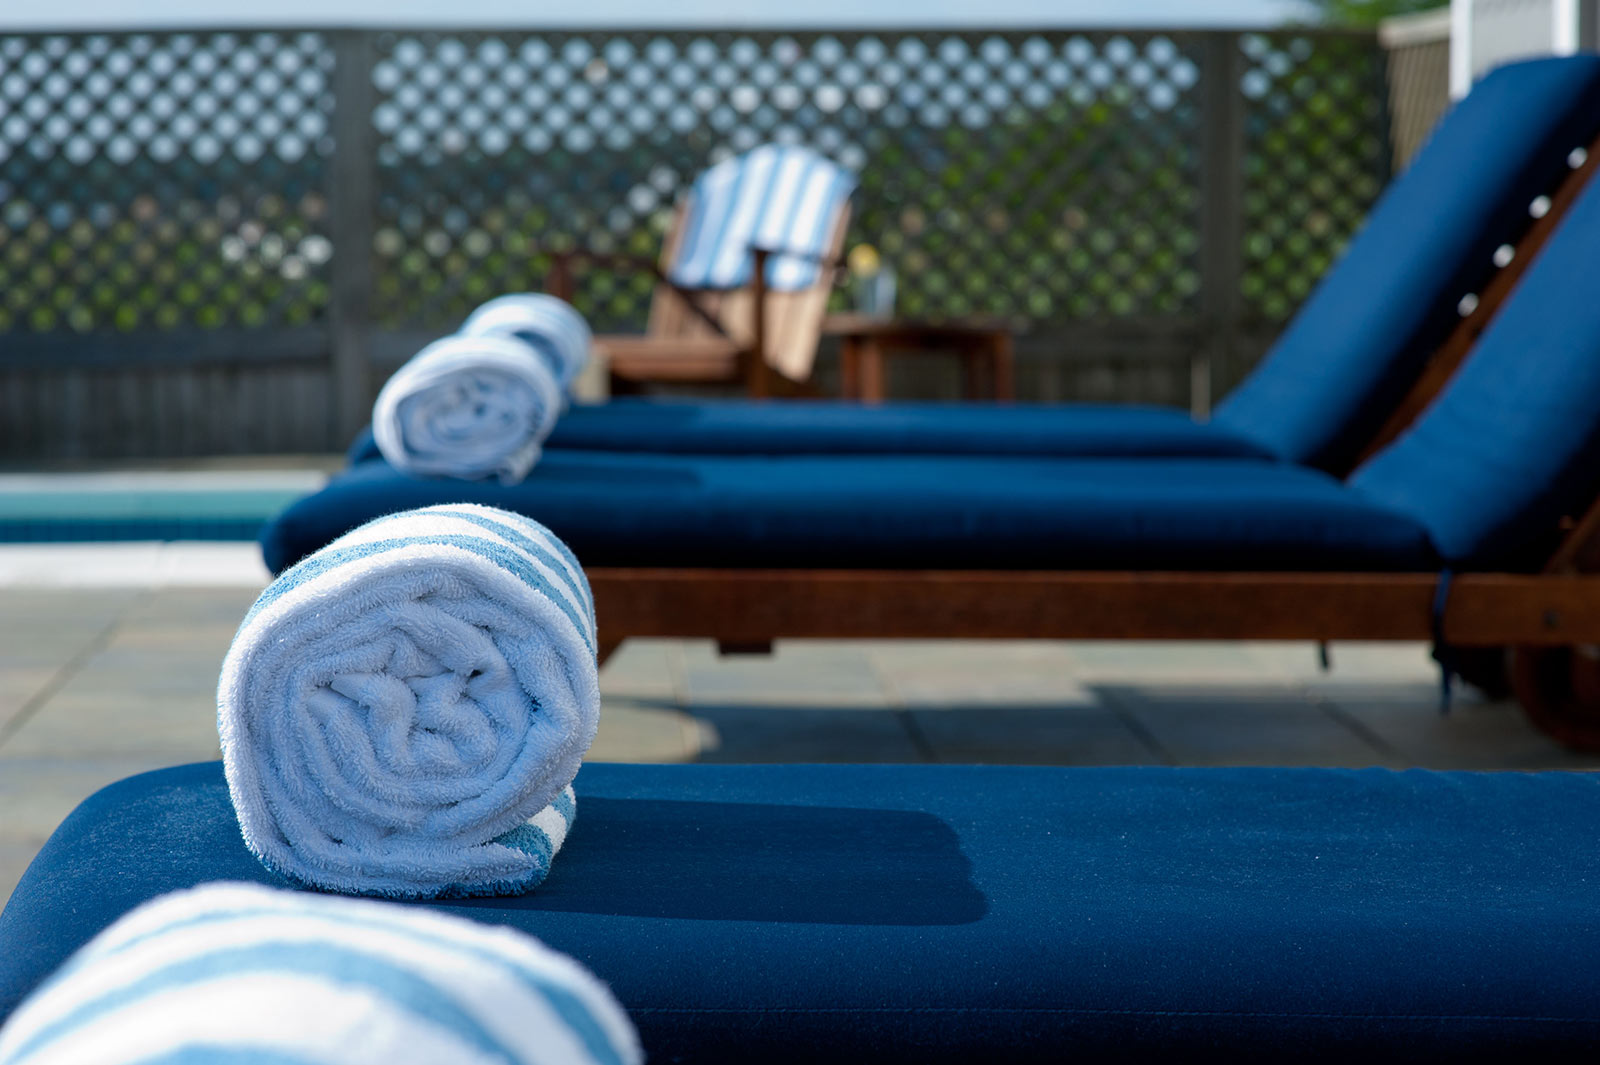 Close up of blue pool lounge chairs